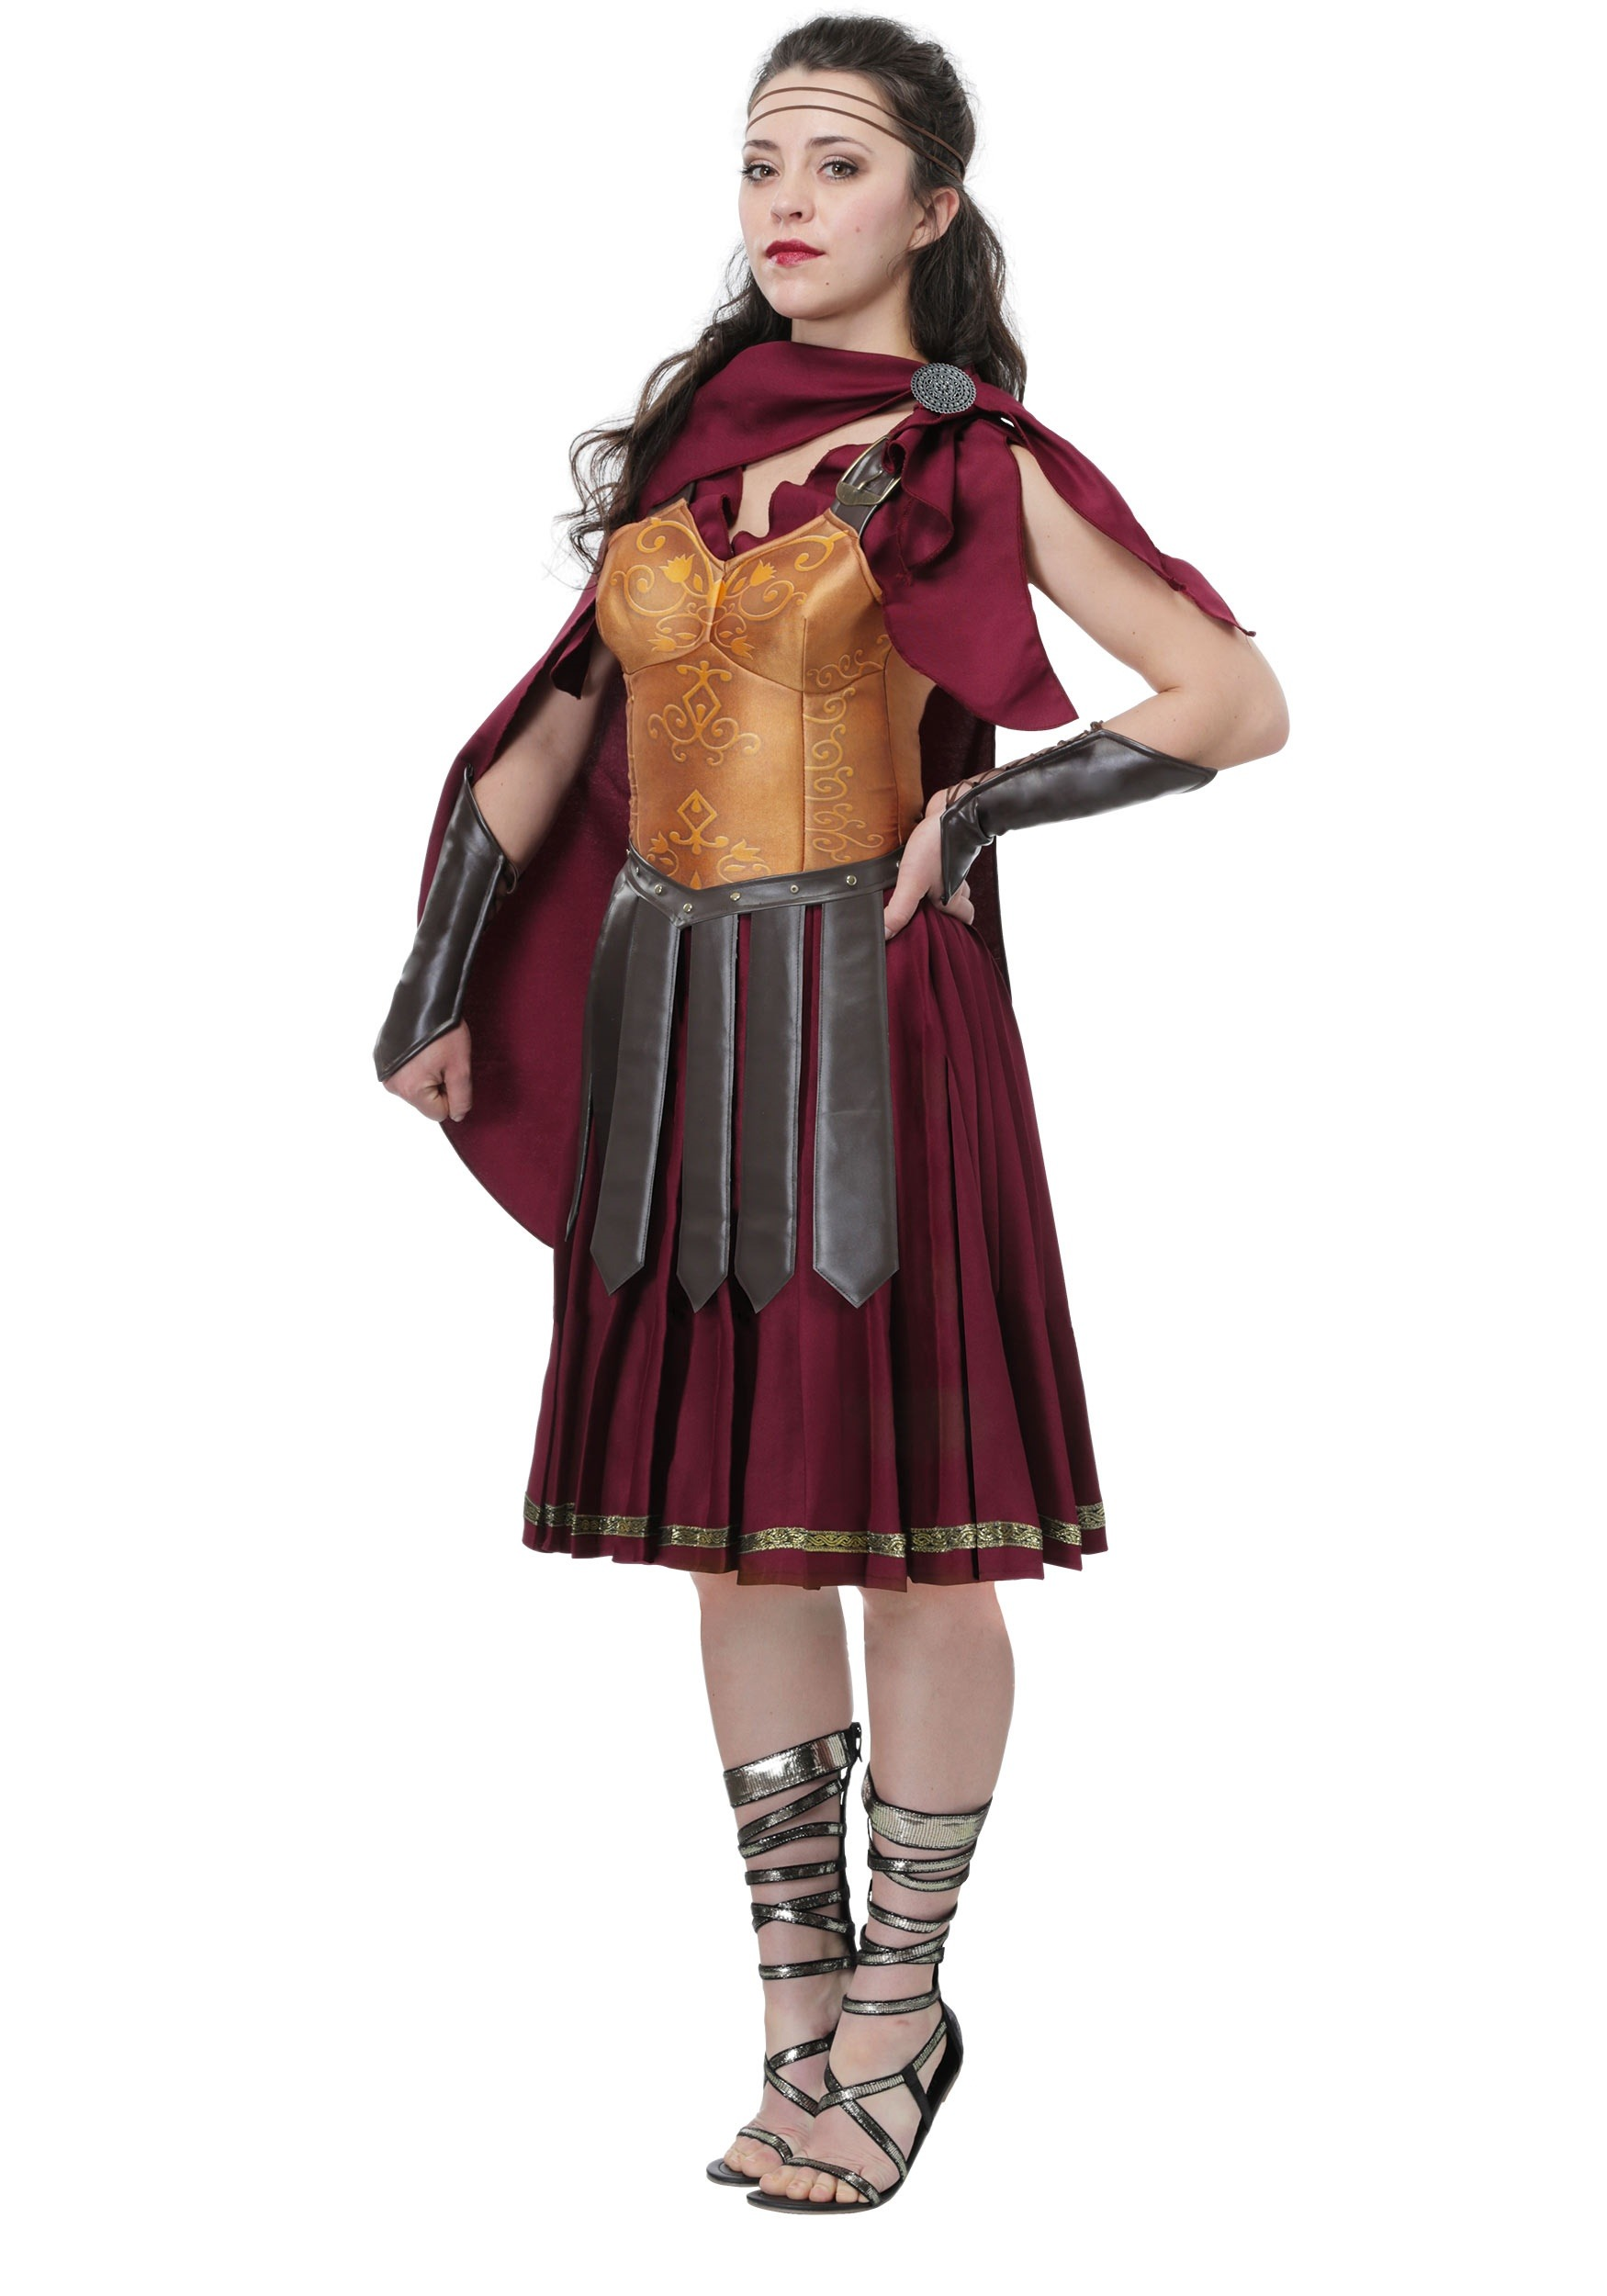 1ca354508f6 Gladiator Plus Size Costume for Women 1X 2X